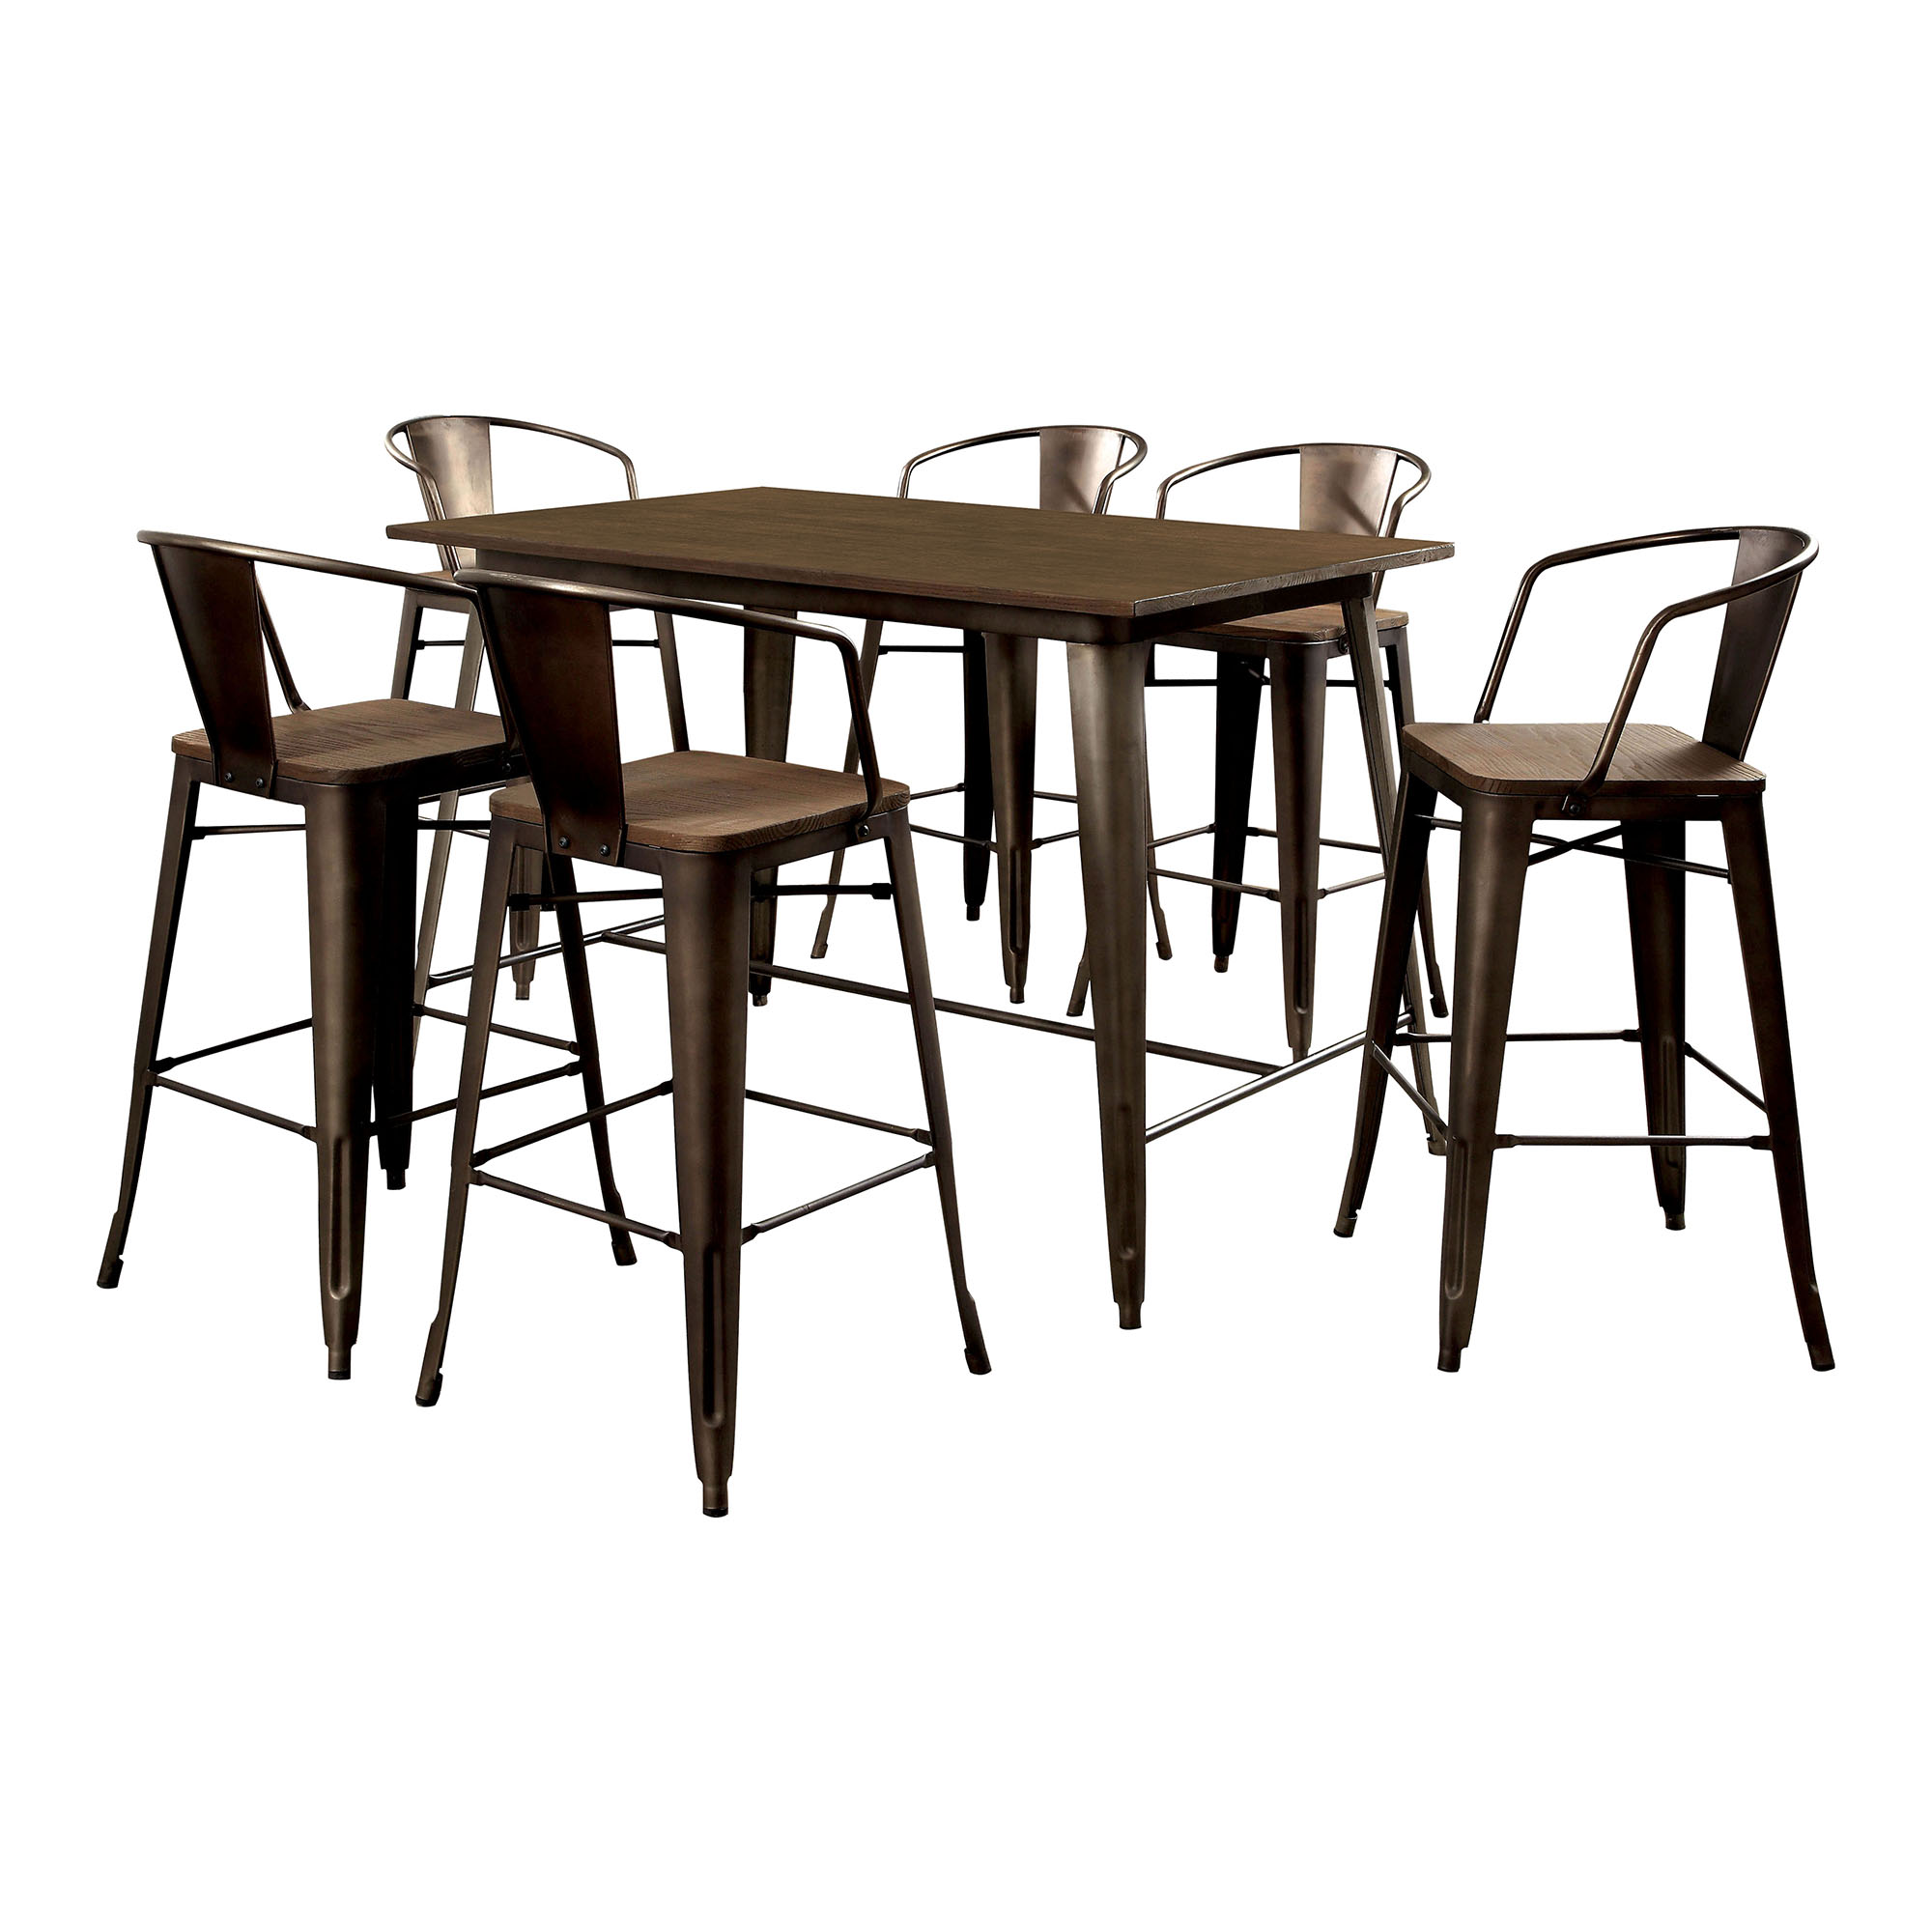 Furniture of America Olmsted 7 Piece Counter Height Metal Framed Dining Table Set | Hayneedle  sc 1 st  Hayneedle & Furniture of America Olmsted 7 Piece Counter Height Metal Framed ...